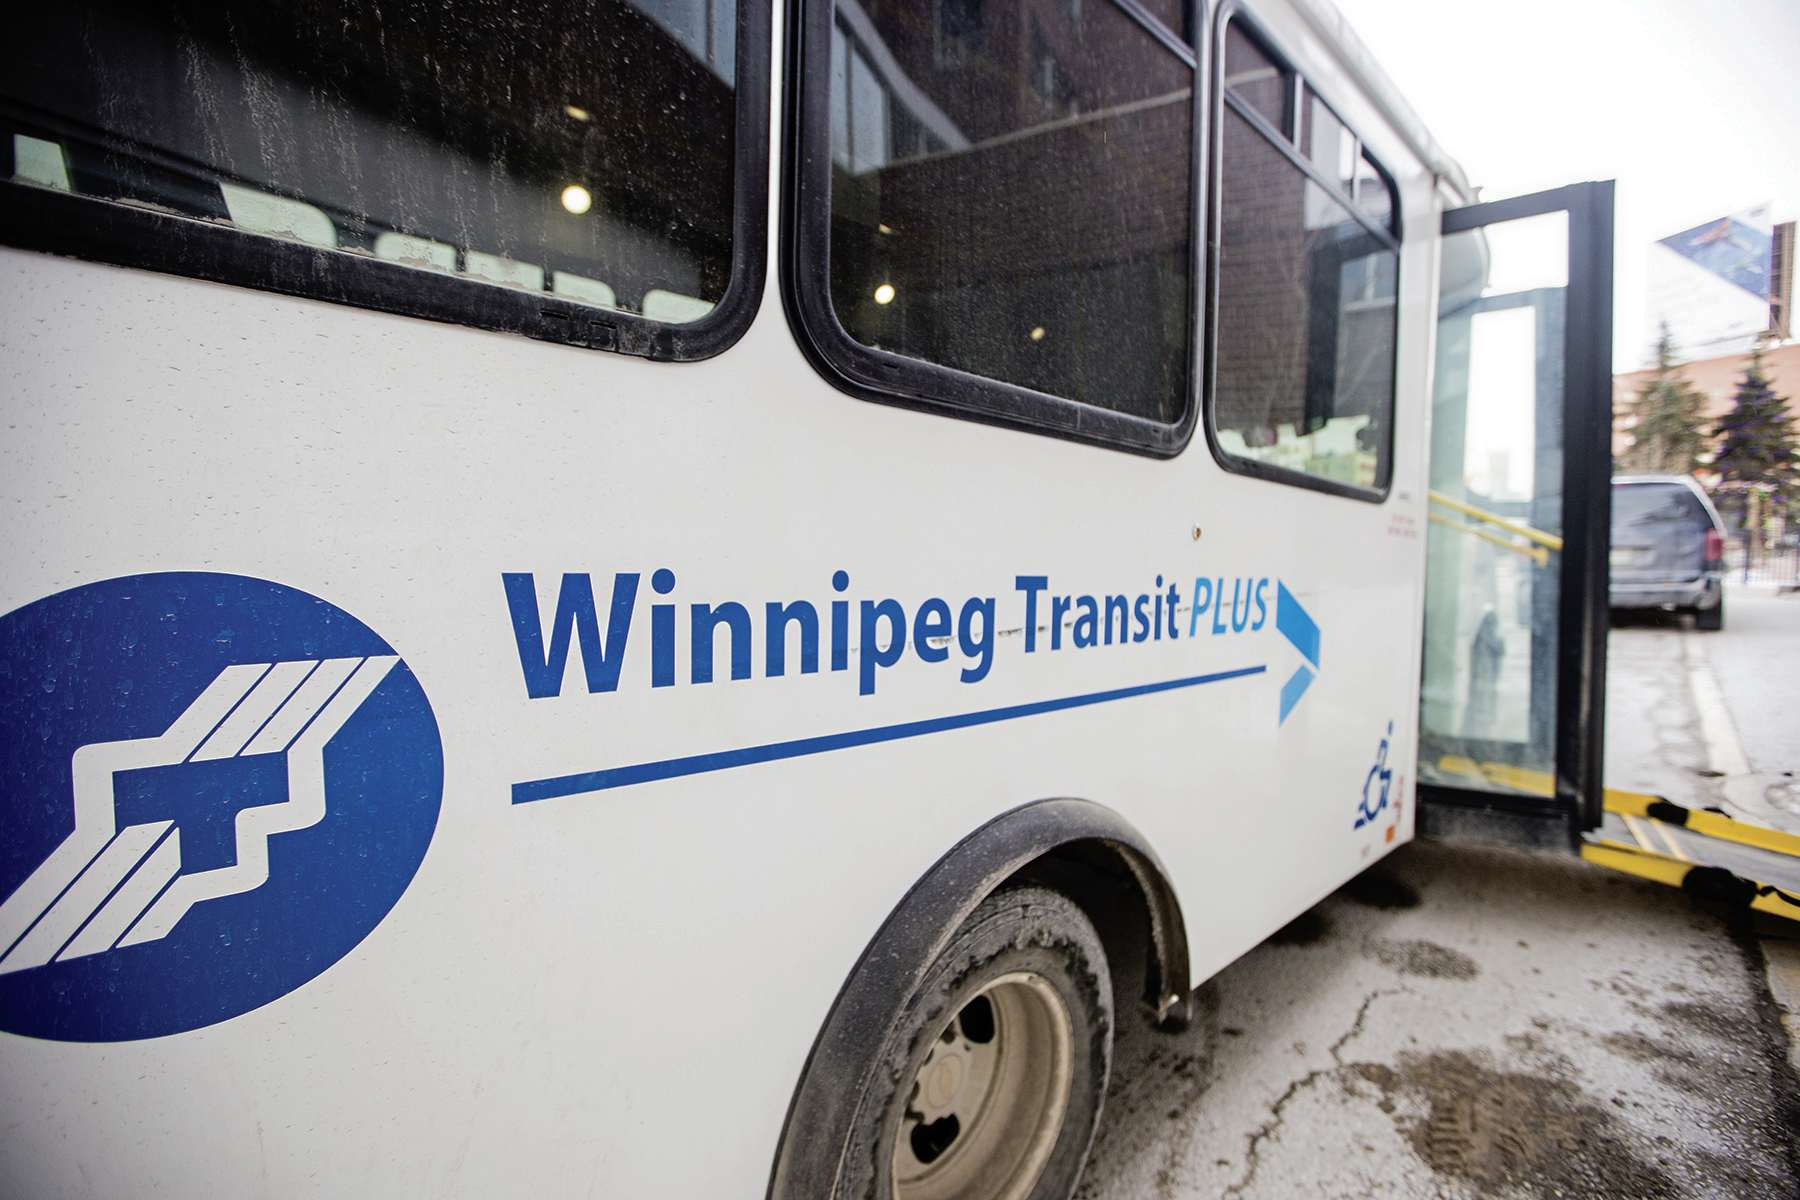 St. Vital councillor Brian Mayes has proposed that Transit Plus service returns to a model whereby the City of Winnipeg is responsible for delivery of 30 per cent of services.